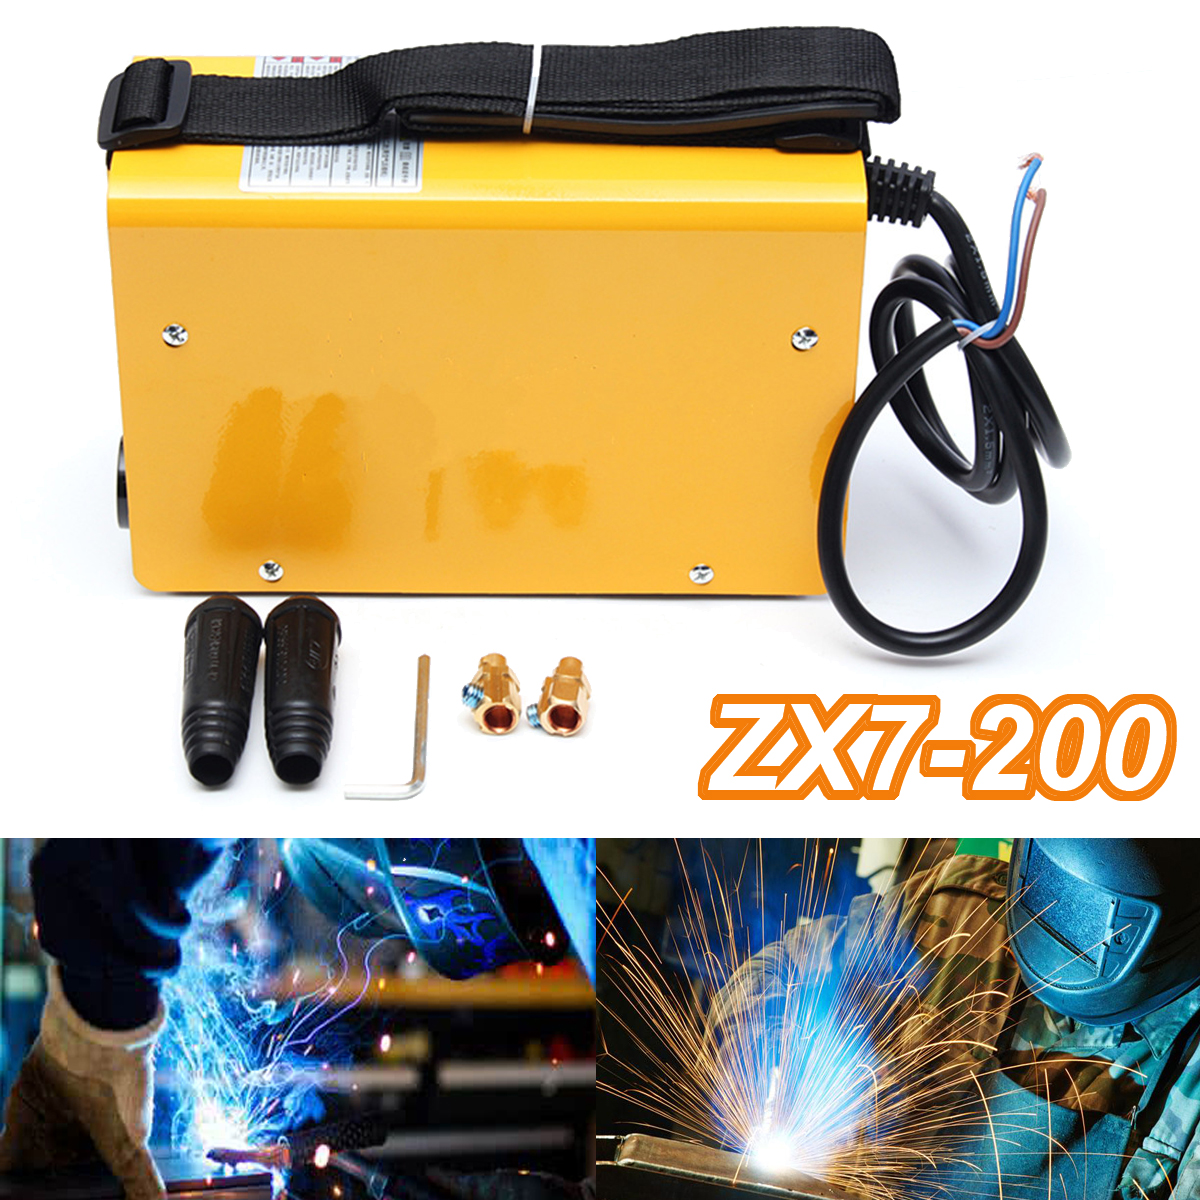 ZX7-200 40W Mini Electric Welding Machine Portable Solder 220V 10-200A IGBT Inverter Air Cooling Soldering Tool Welding Working